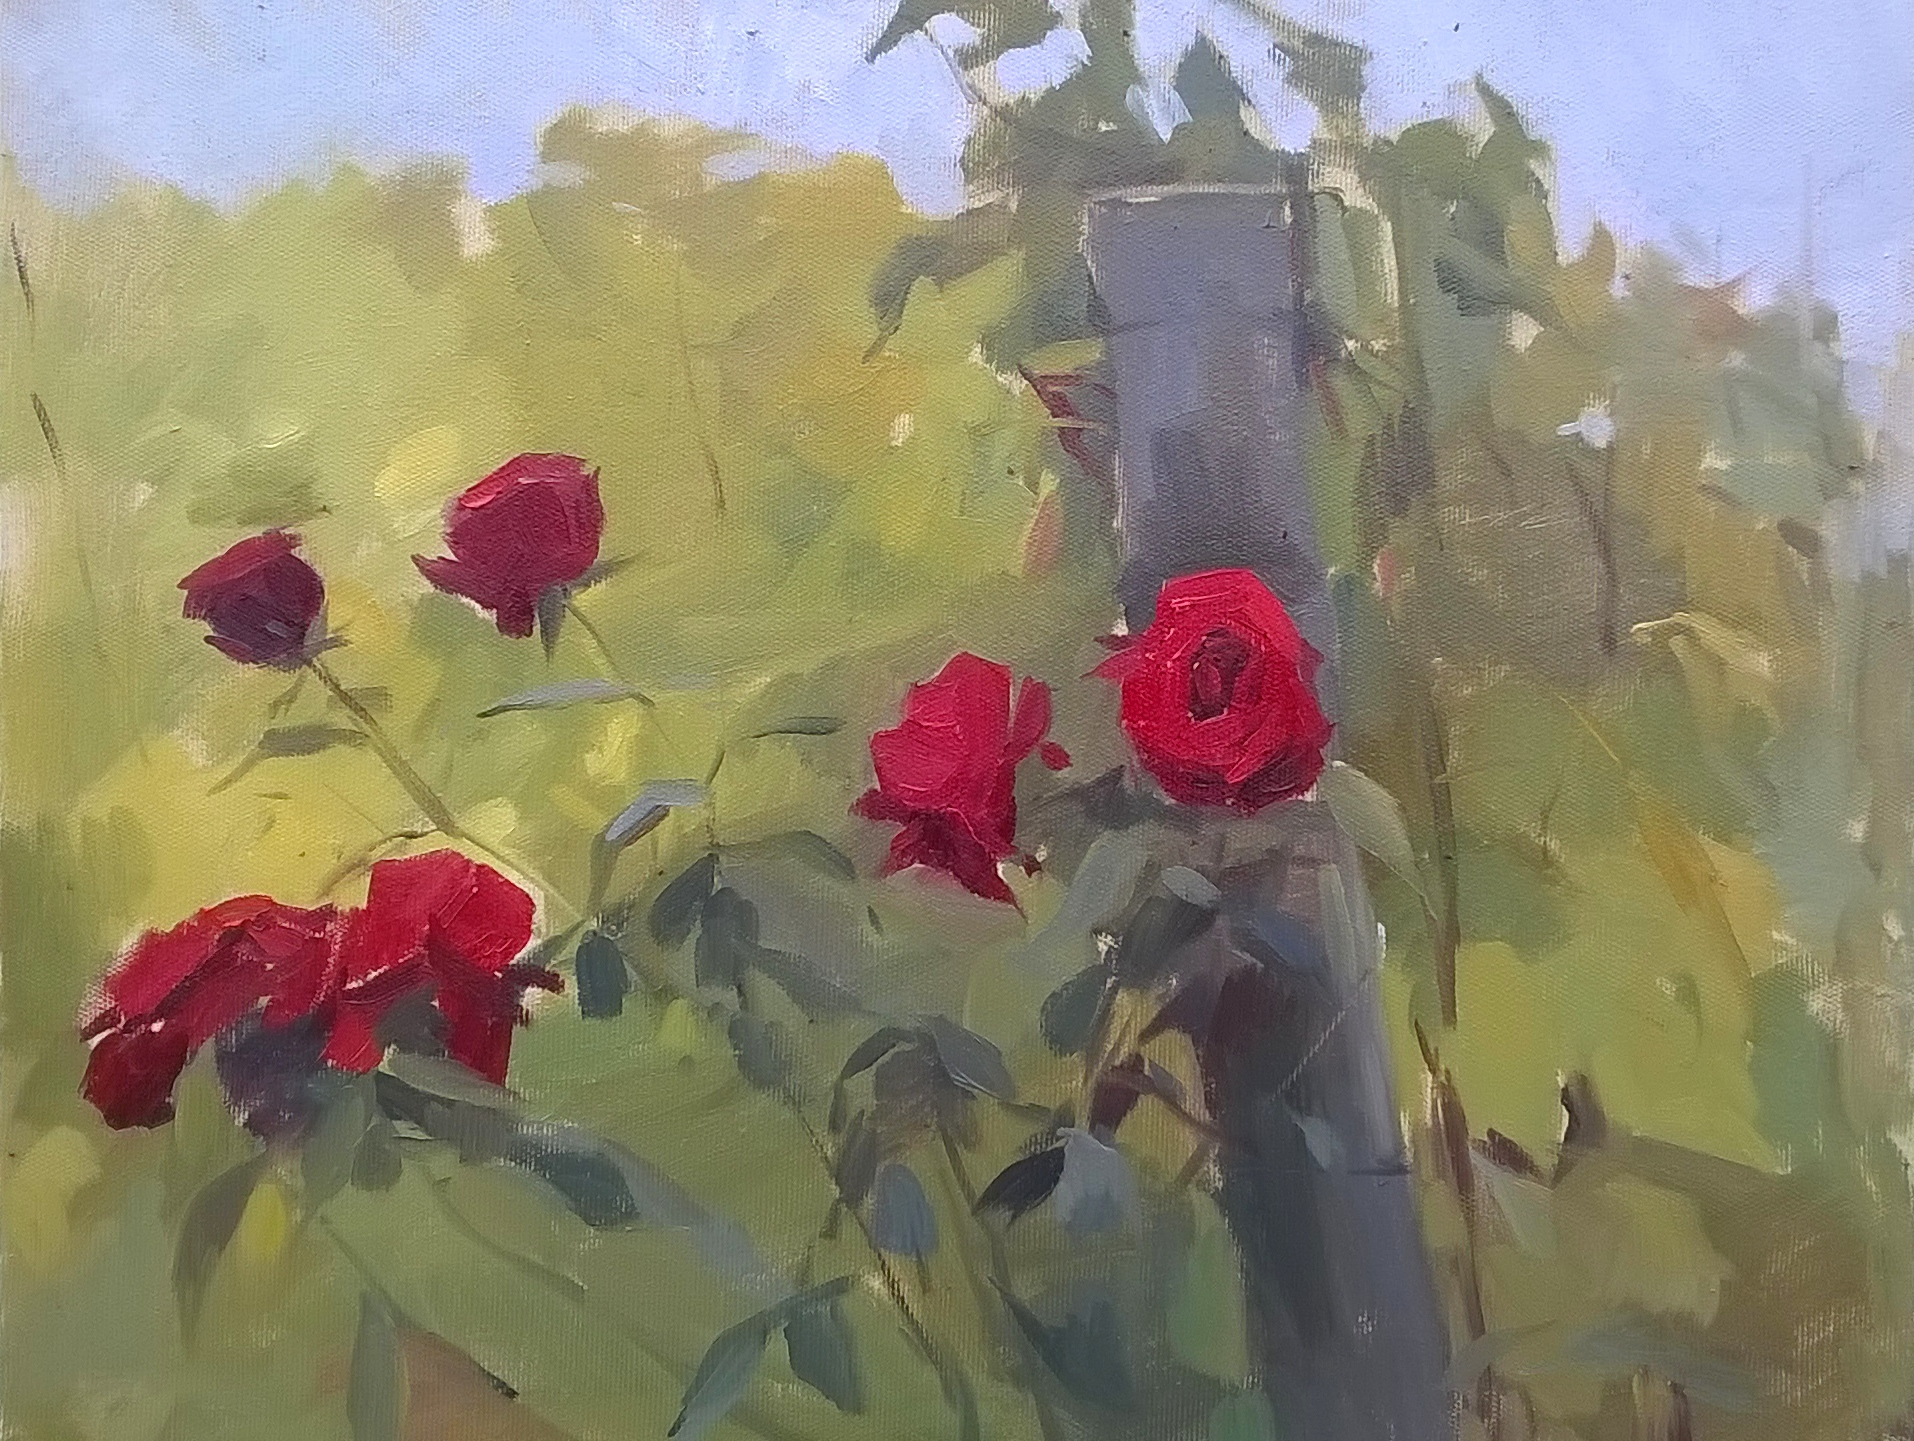 'Roses at Pontassieve' 40 cm x 50 cm Oil on linen